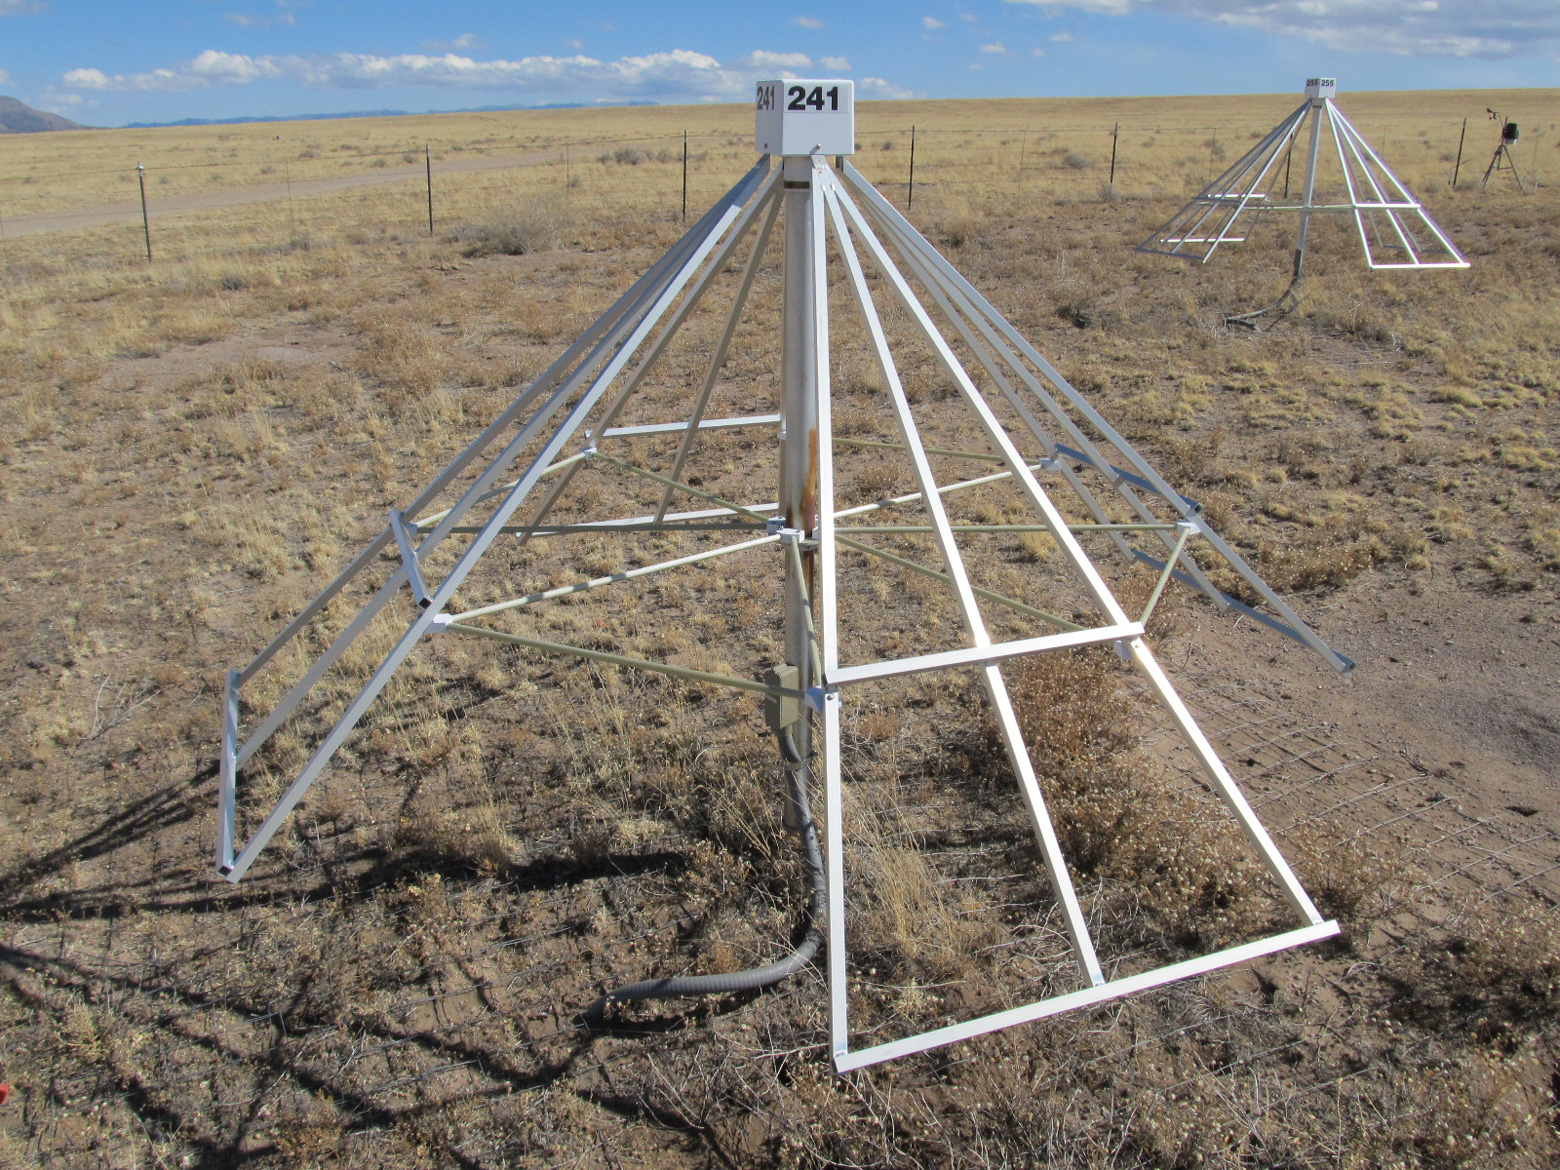 The radio antenna model that Kasper intends to send to students on the SunRISE project to measure radio waves from the sun.